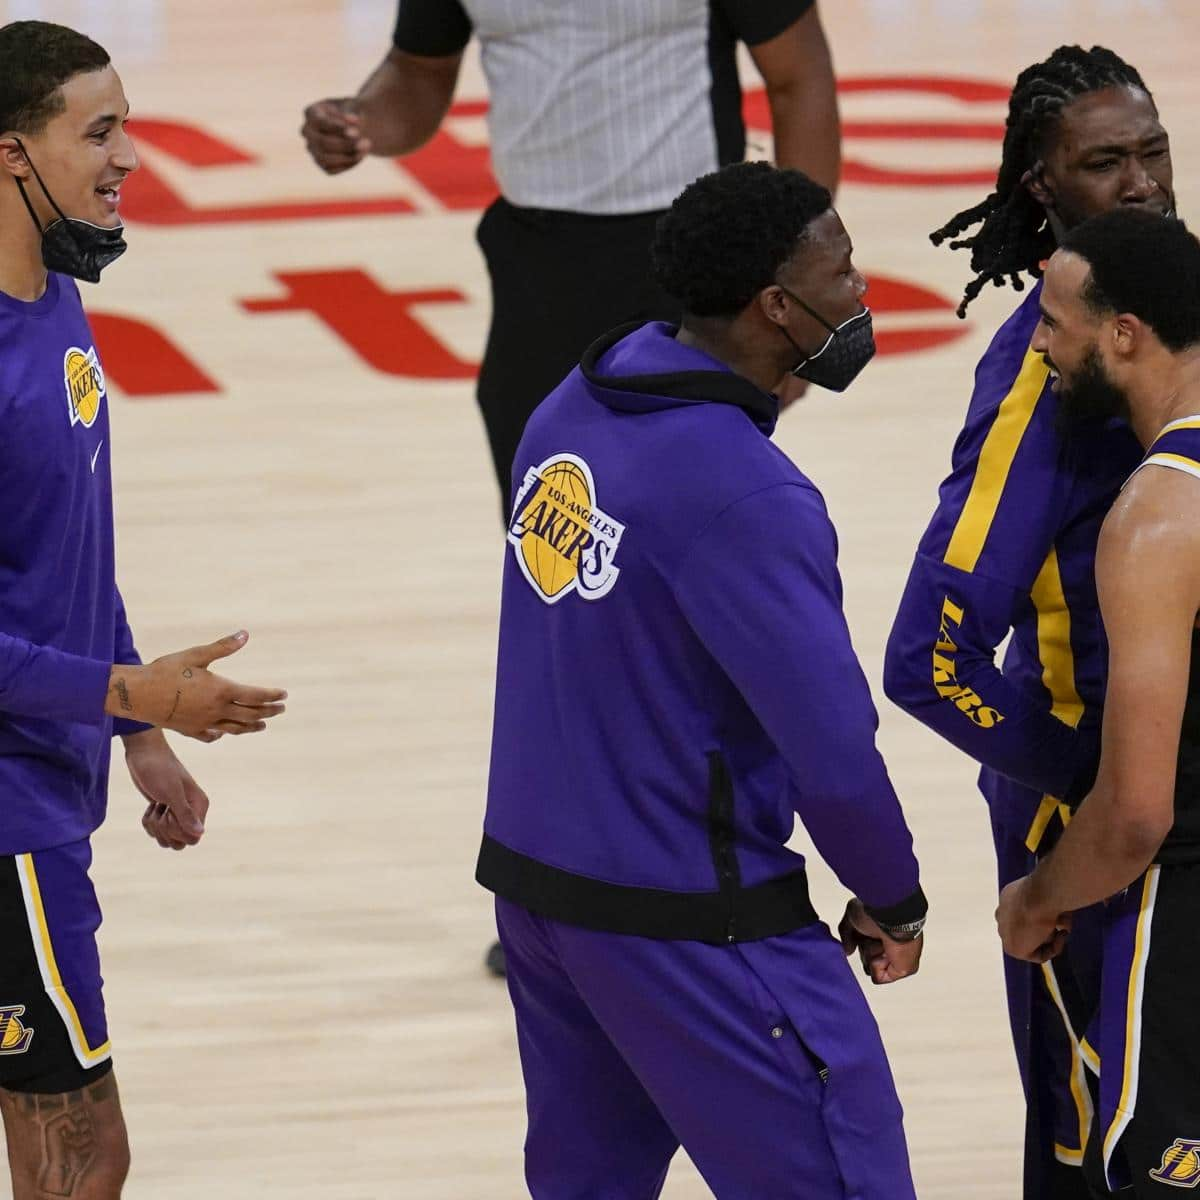 nba-playoff-listing-2021-standings-predictions-for-lakers-warriors-and-more.jpg